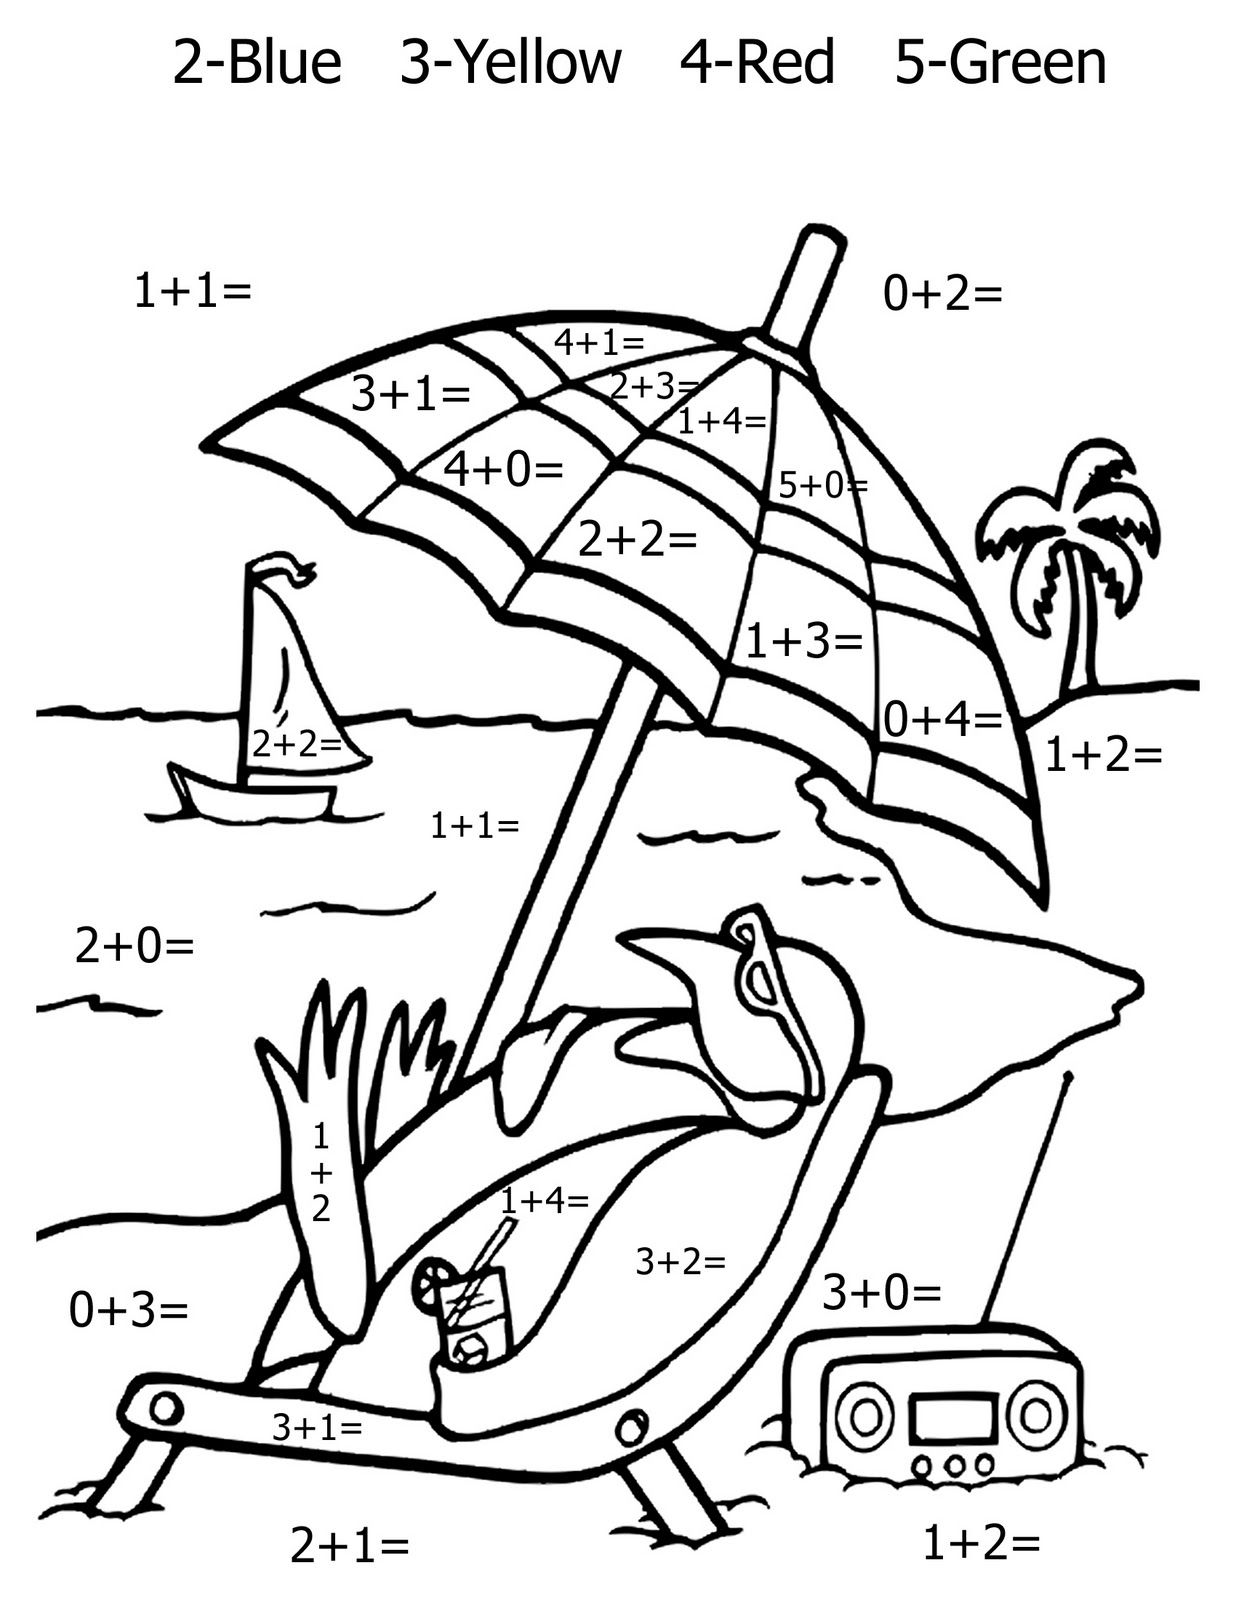 Coloring pages for double digit subtraction - Color By Number Math Coloring Pages For Kids